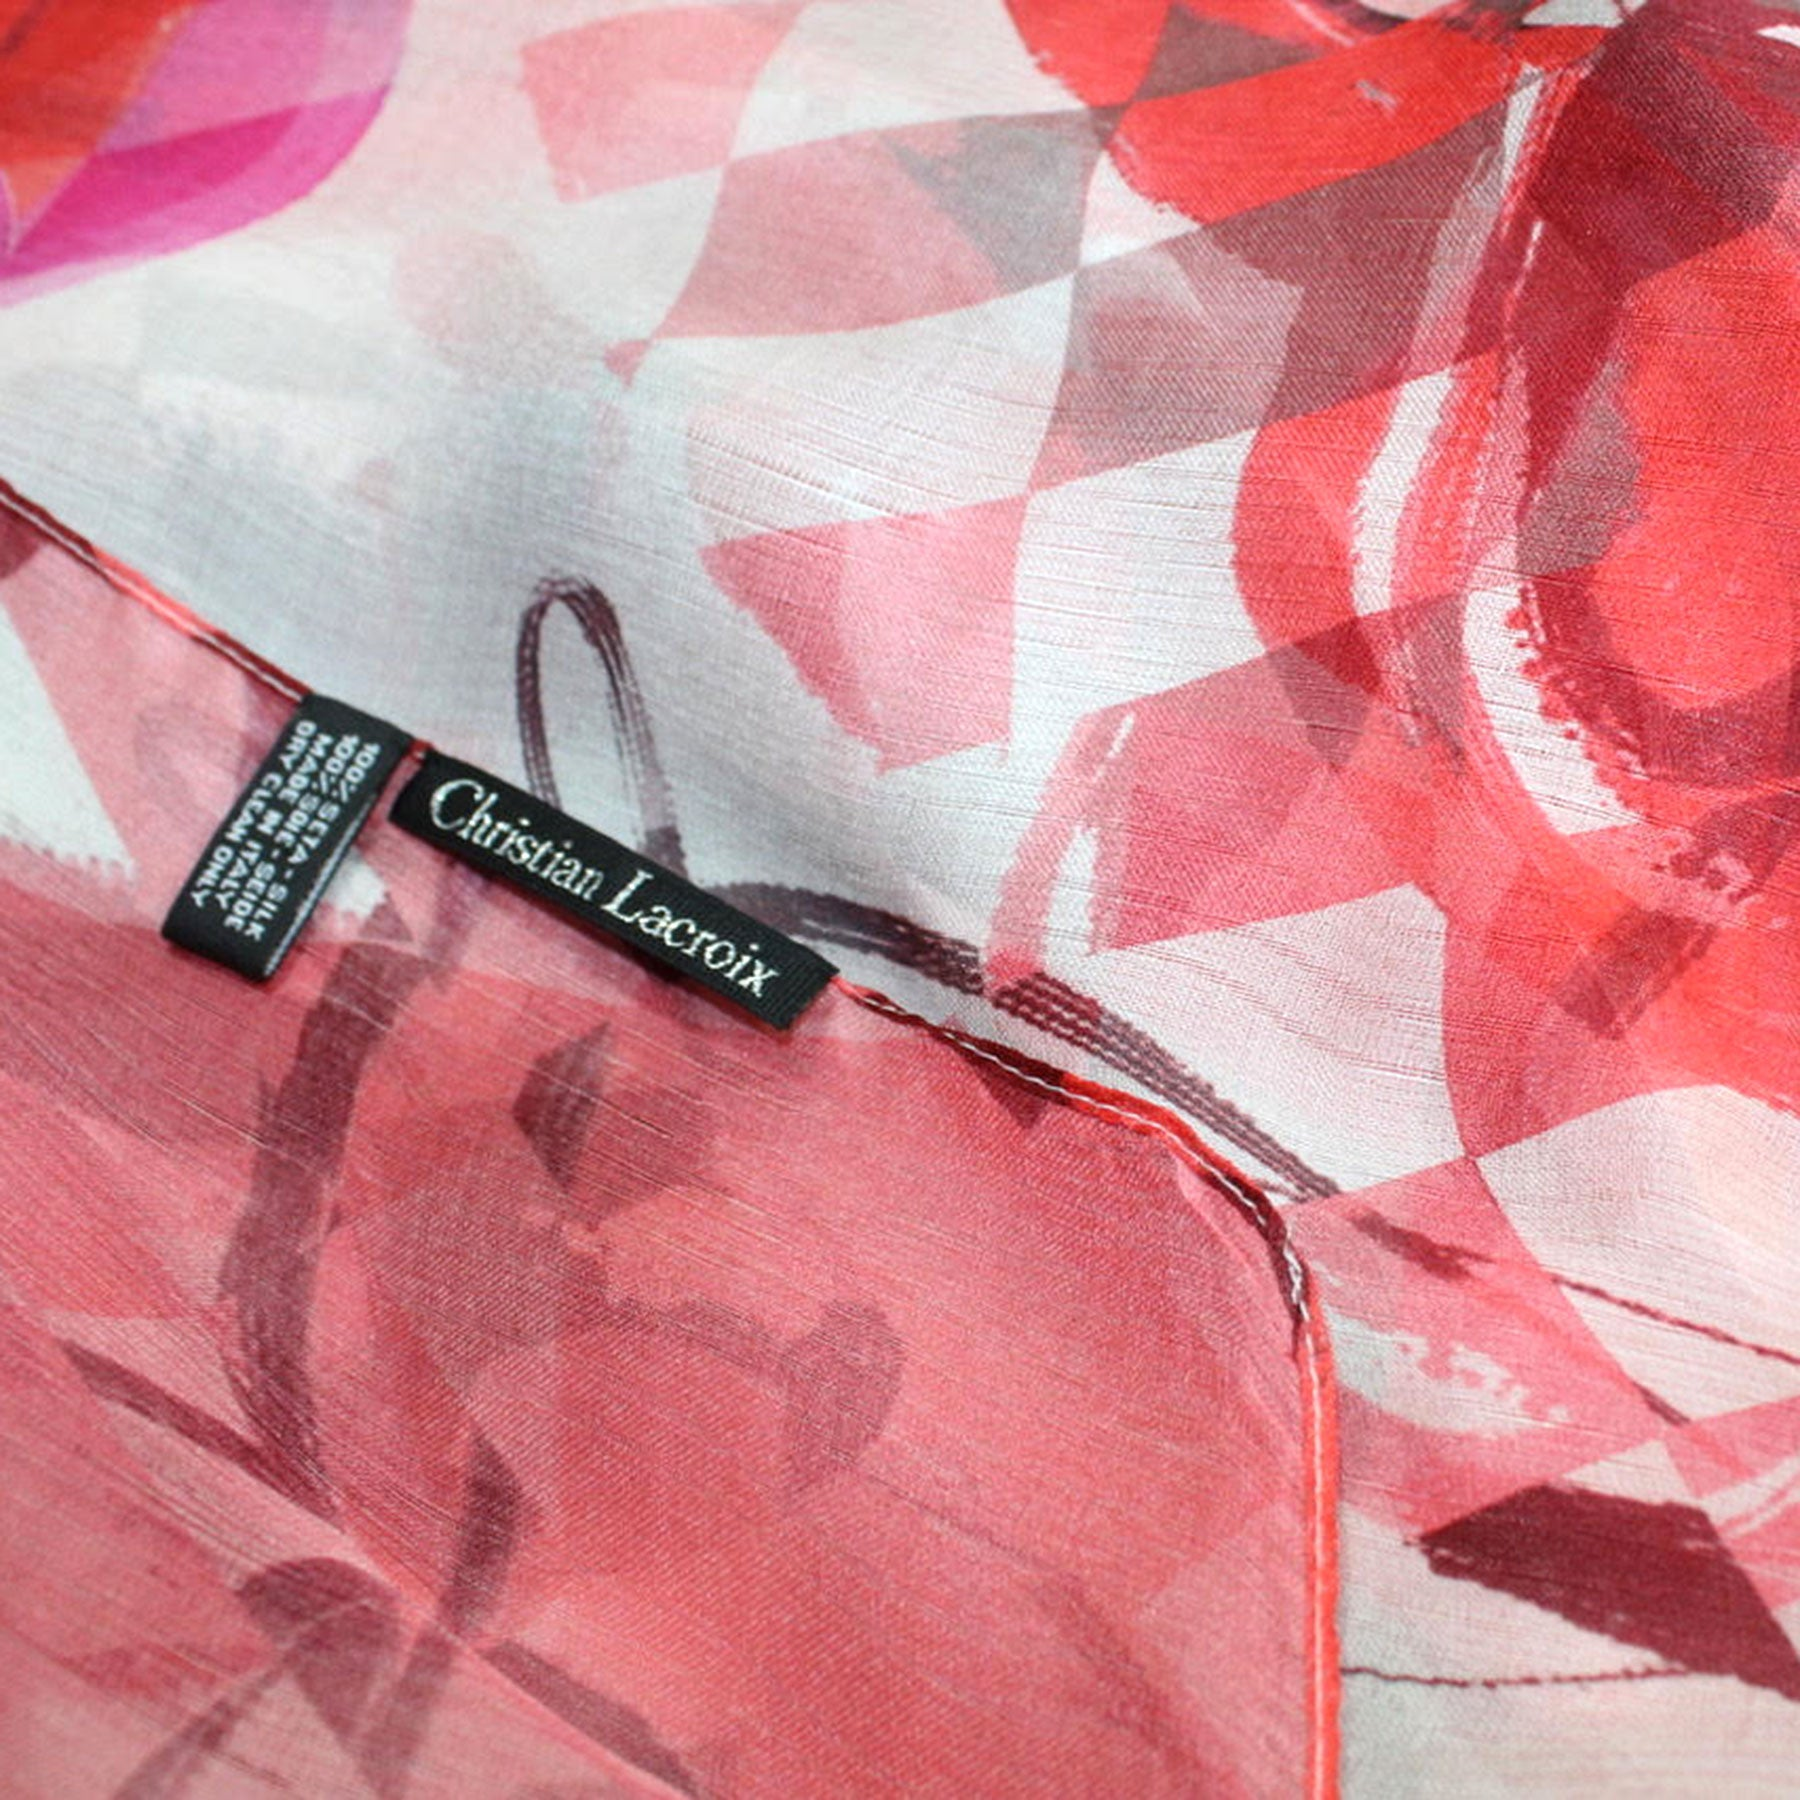 Christian Lacroix Scarf Original Print Rust Fuchsia Black White Geometric - Extra Large Silk Square Wrap SALE